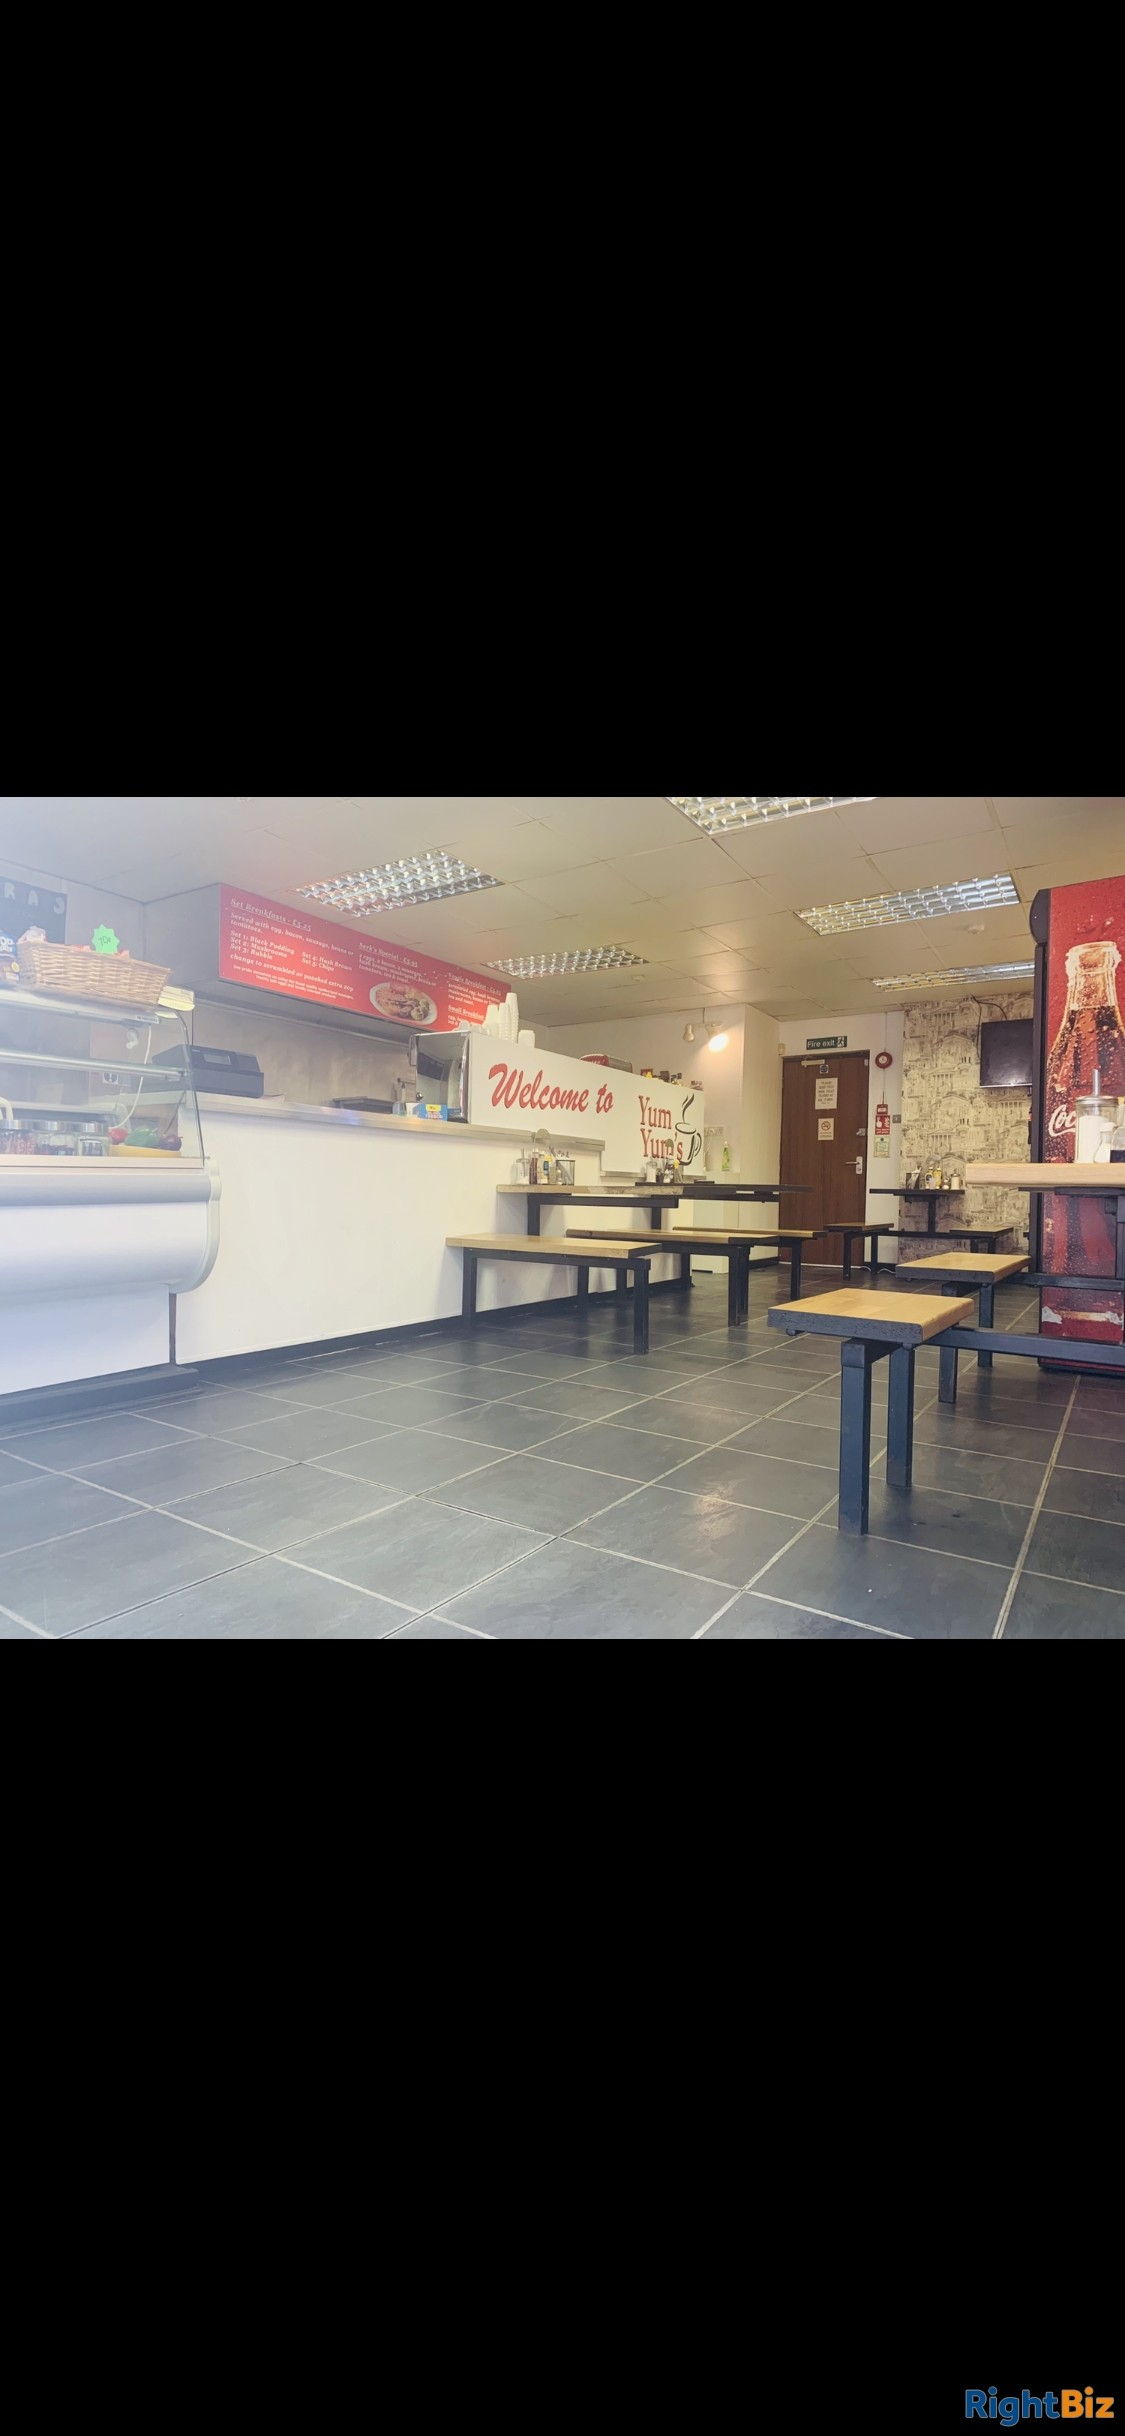 Cafe for sale - only place to eat on an industrial estate for 52 businesses - quick sale - Image 3